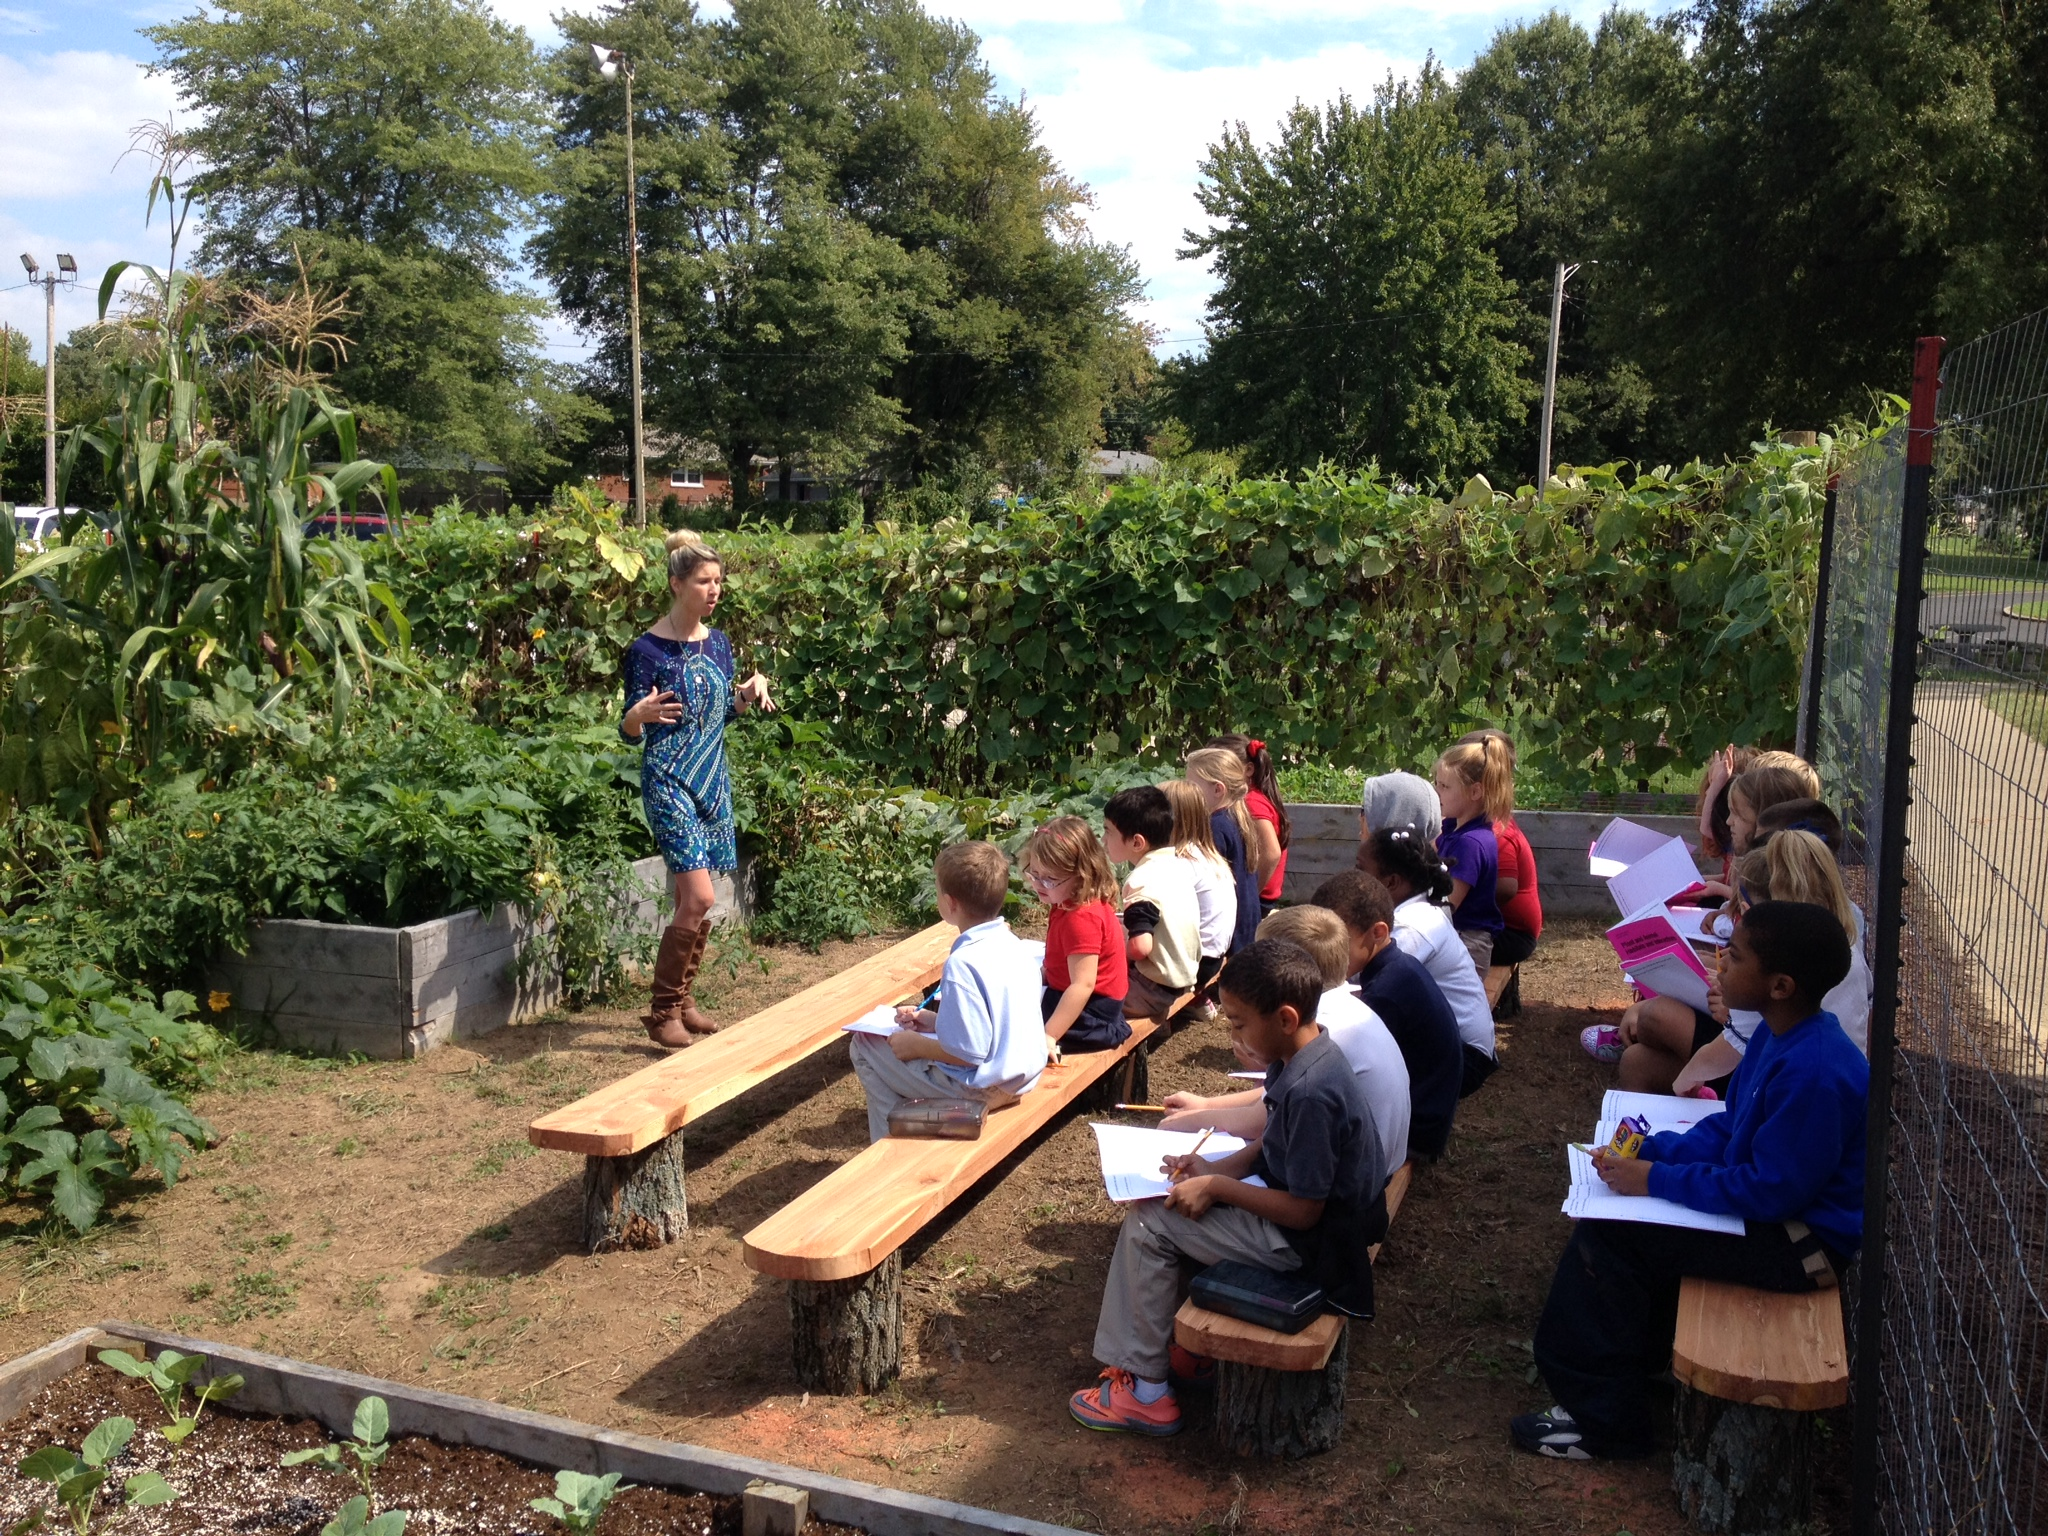 The garden provides valuable time outdoors for students. Look – they're even paying attention!